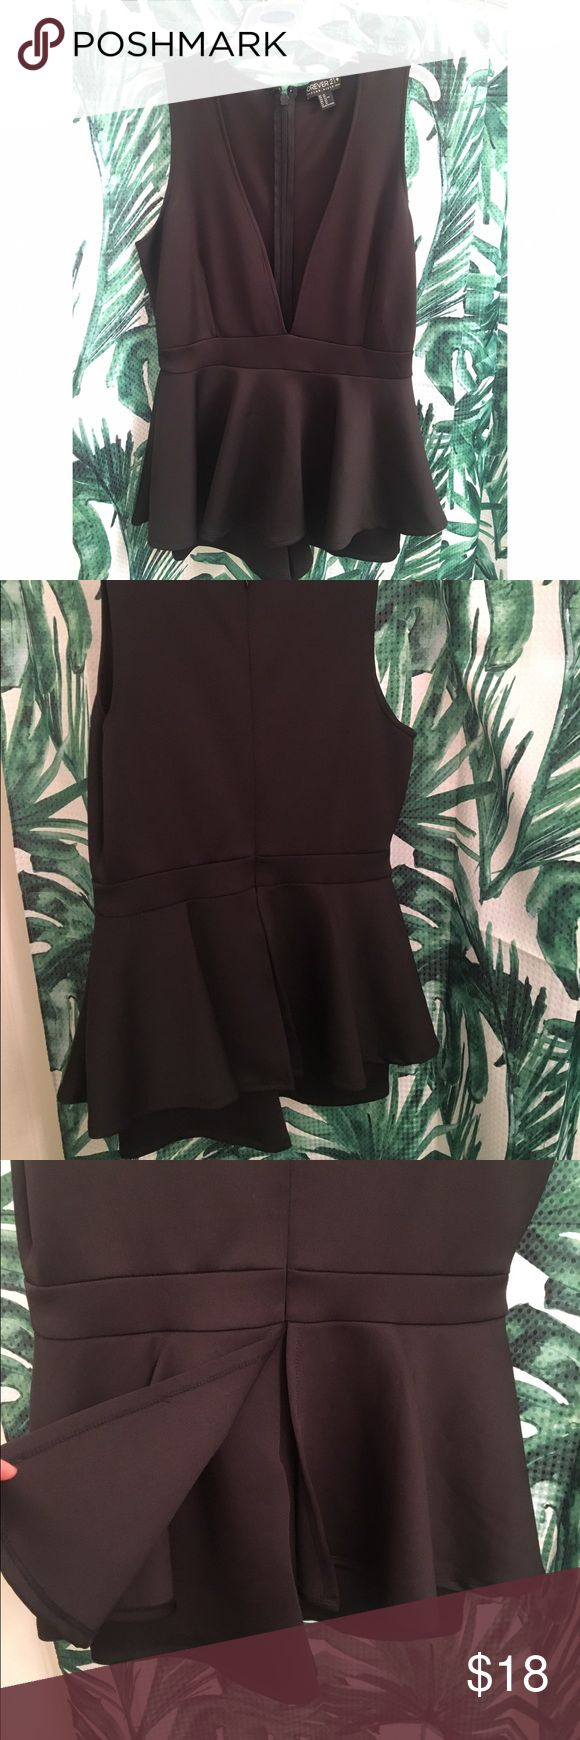 Forever 21 black peplum romper OX Super cute black peplum romper with plunging neckline, had peplum skirt with shorts that show underneath. Size 0x which I think like XXL , never been worn Forever 21 Dresses Mini